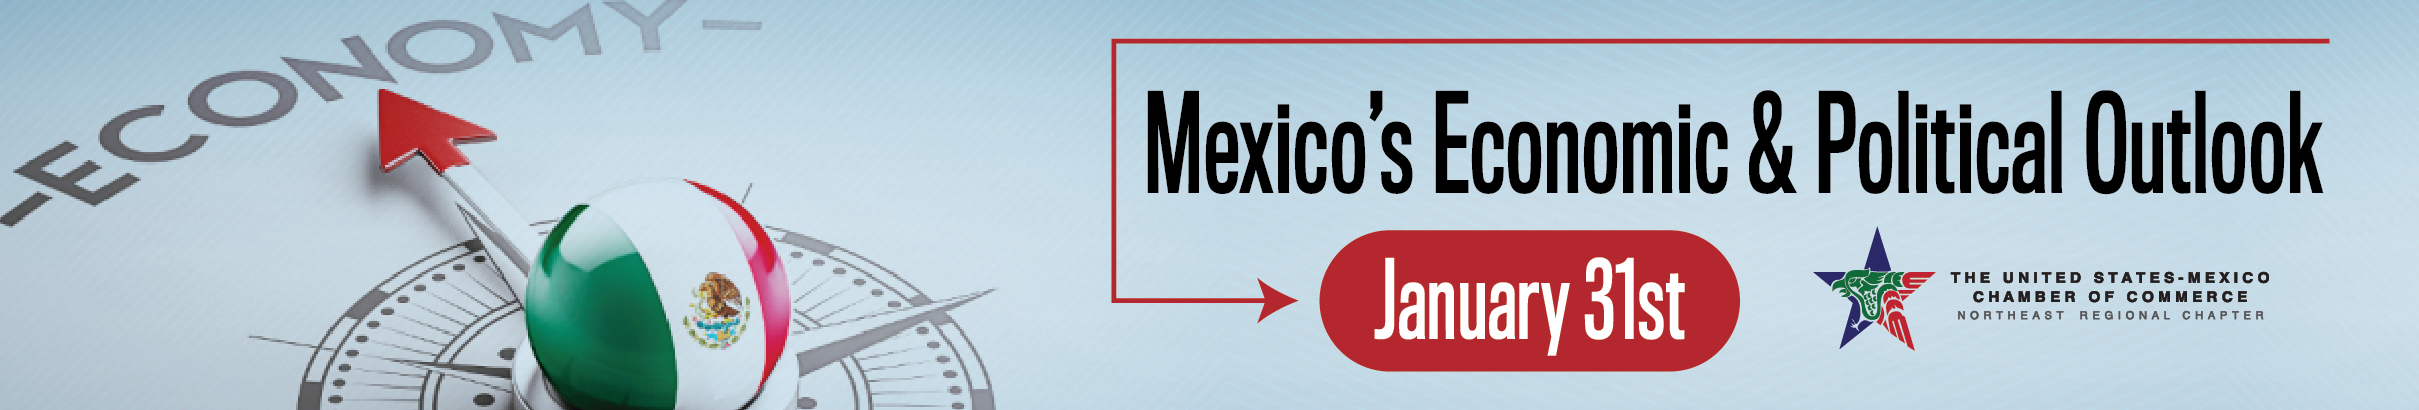 Mexico's Economic & Political Outlook